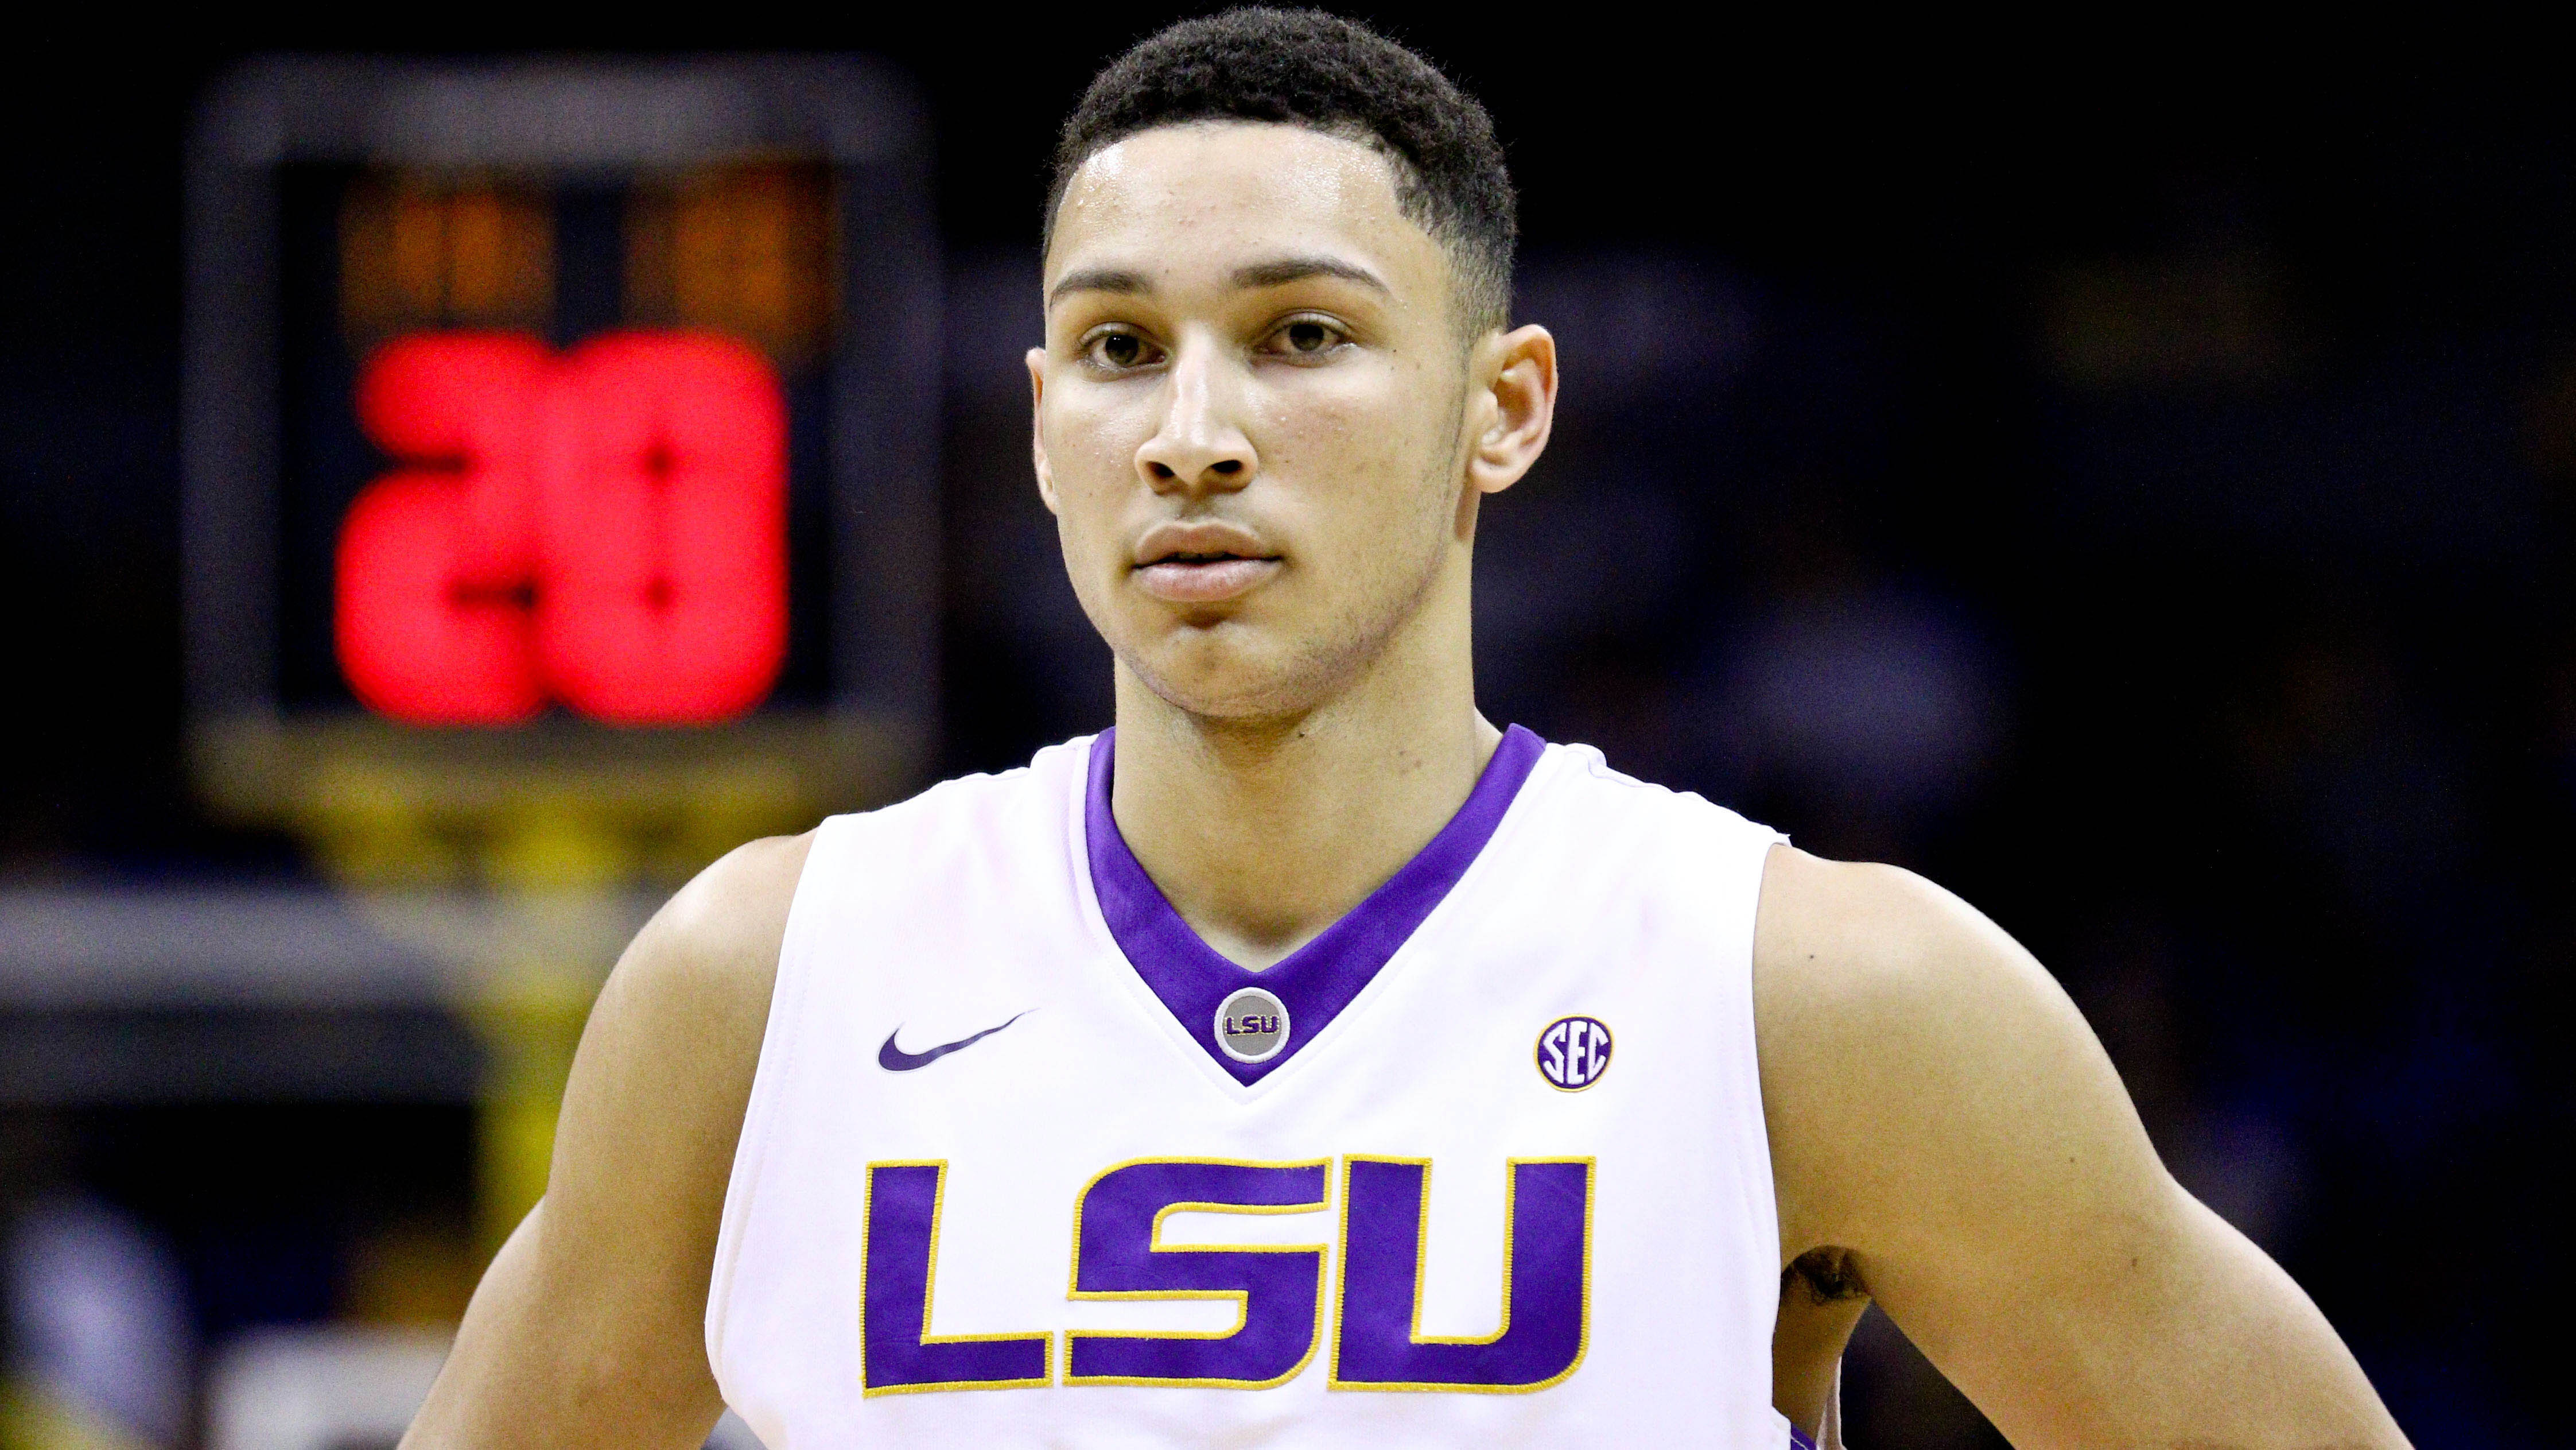 Ben Simmons Became The First LSU Player To Be Taken No 1 Overall Since Shaquille ONeal In 1992